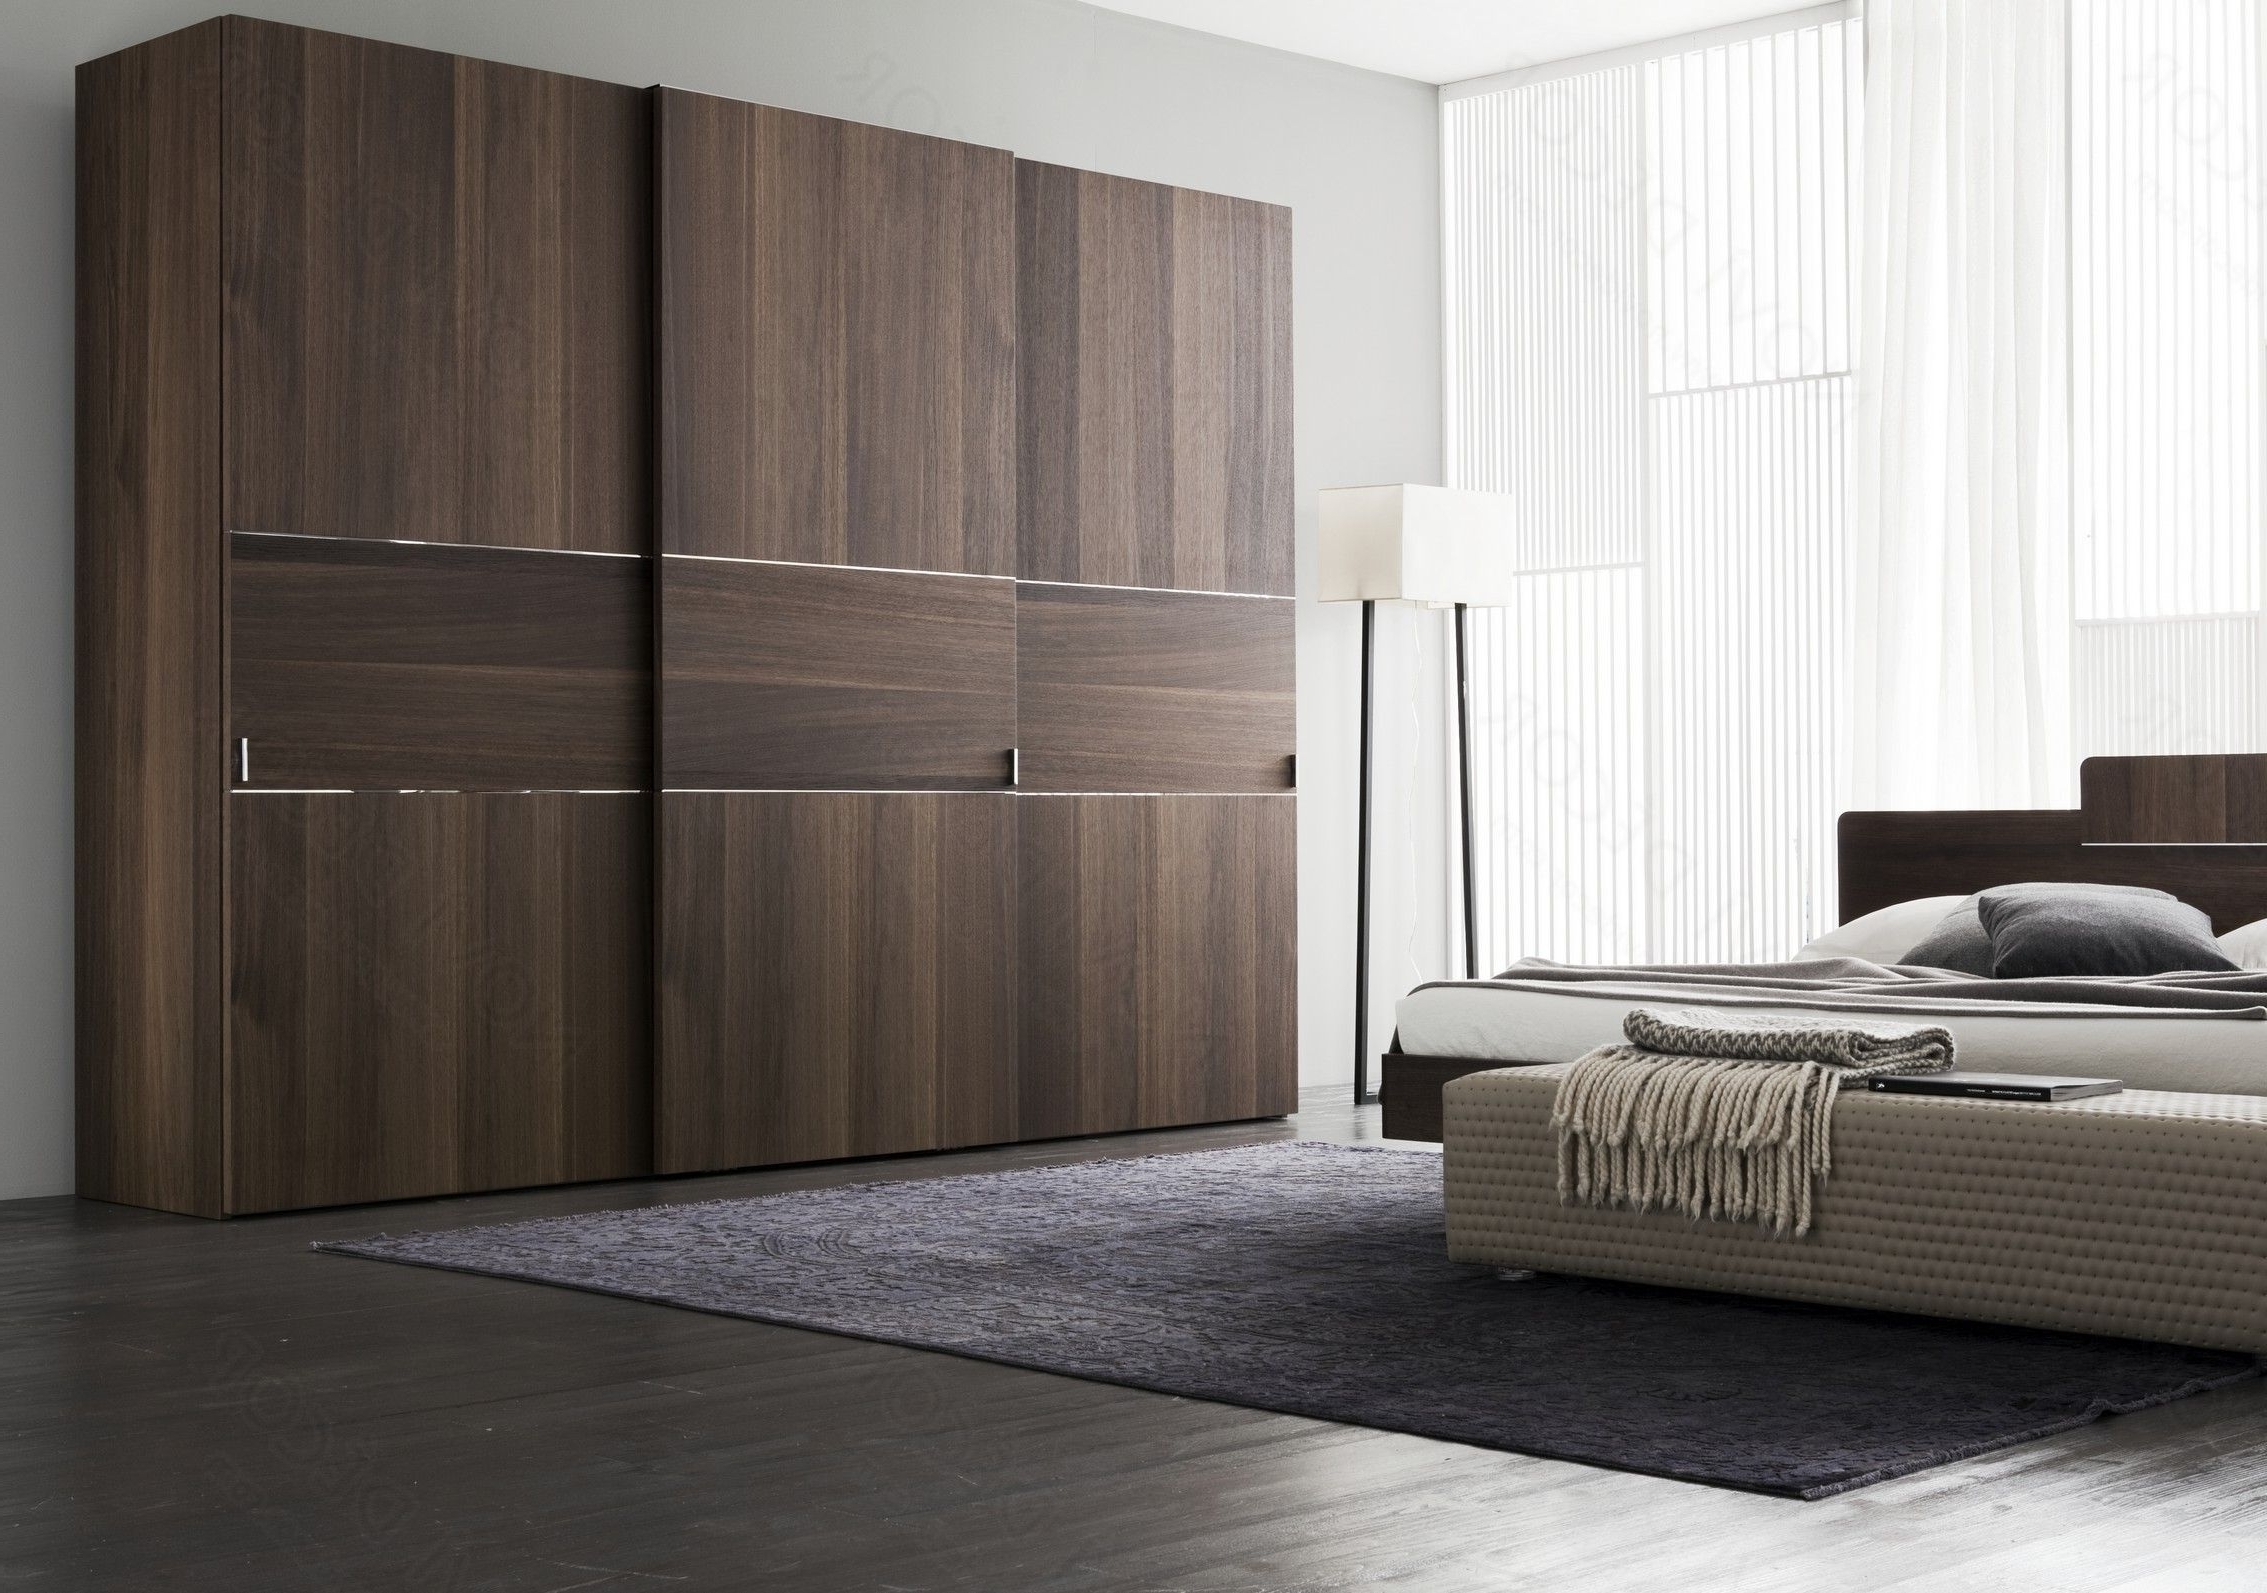 Bed And Wardrobes Combination Inside Current Sliding Wardrobe Doors As Nice Color Combination Furniture For (View 4 of 15)